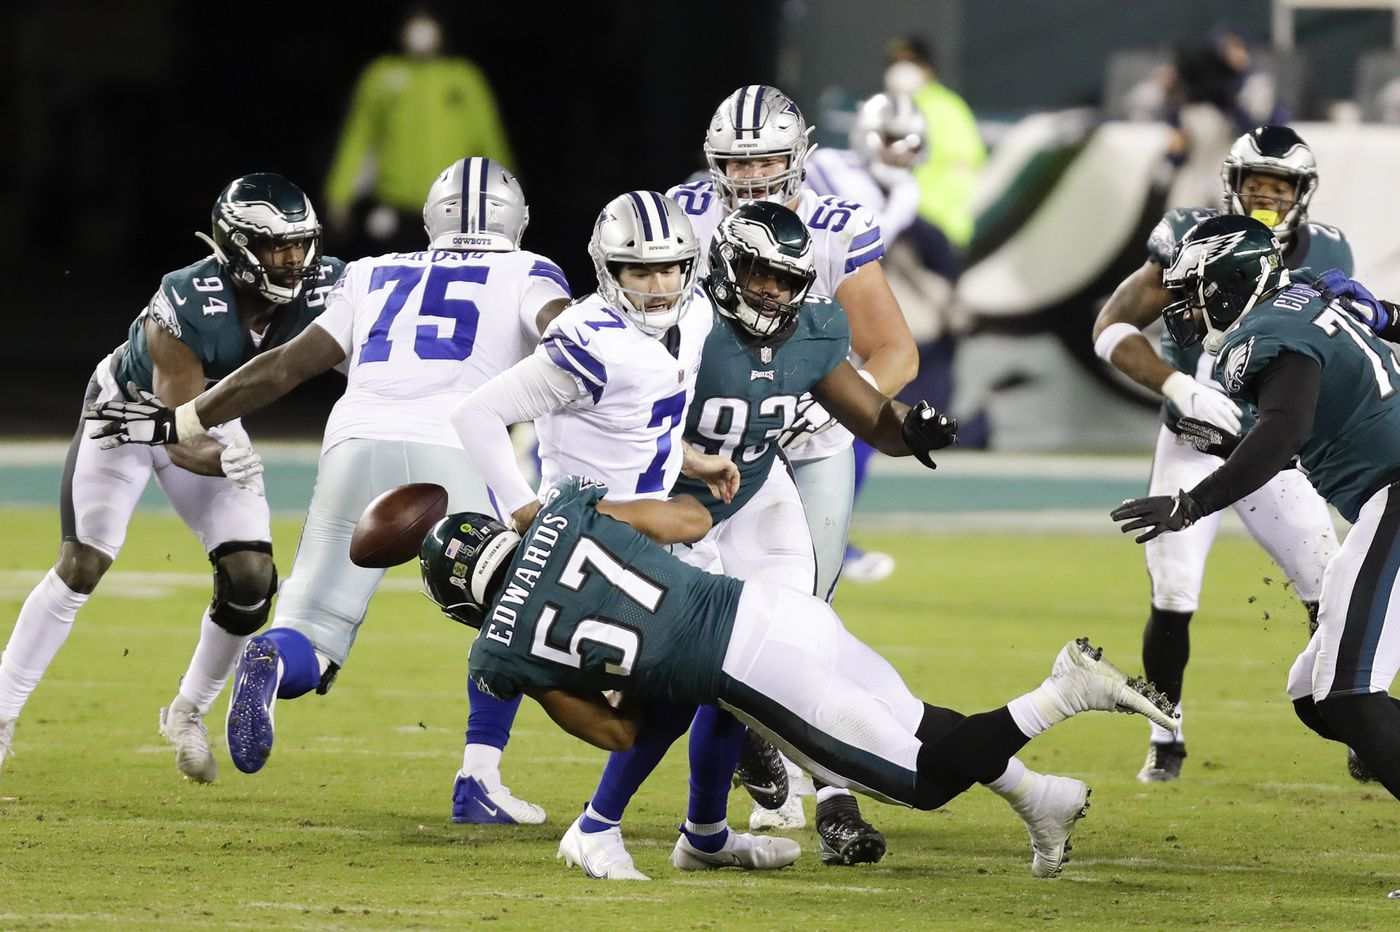 Eagles dusted off the blitz to beat the Cowboys and their rookie quarterback